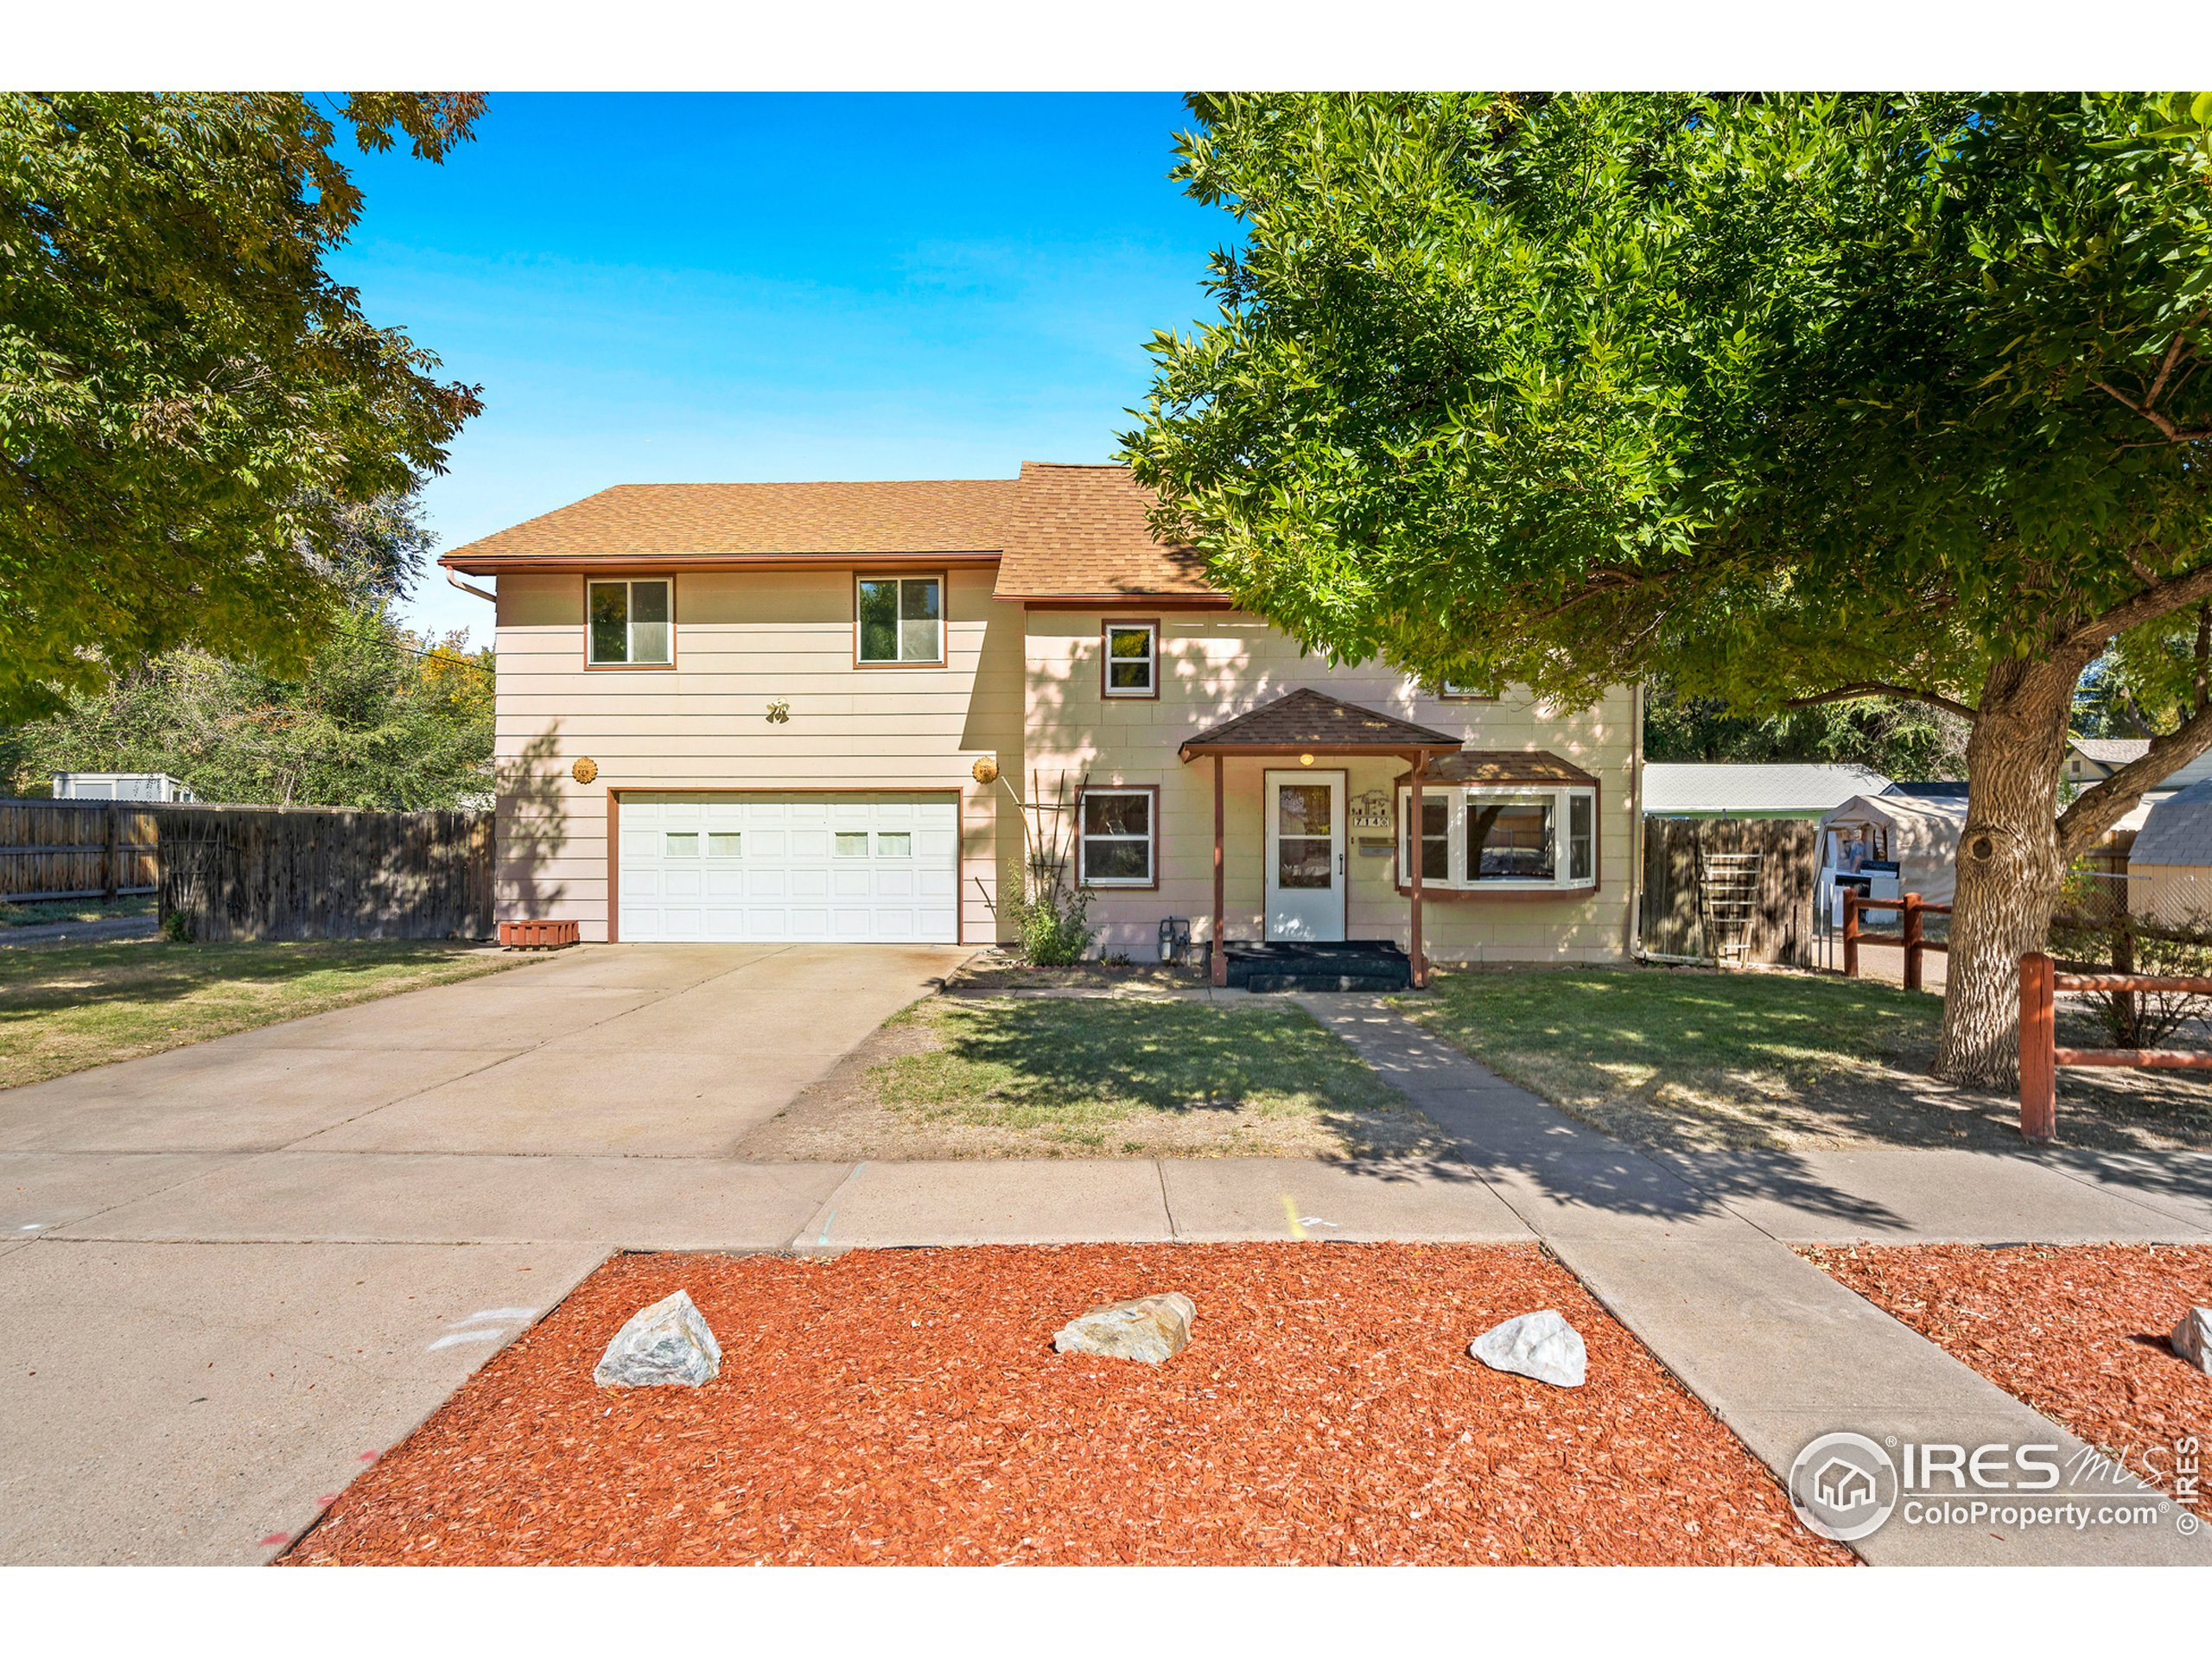 714 Cherry St, Fort Collins, CO 80521